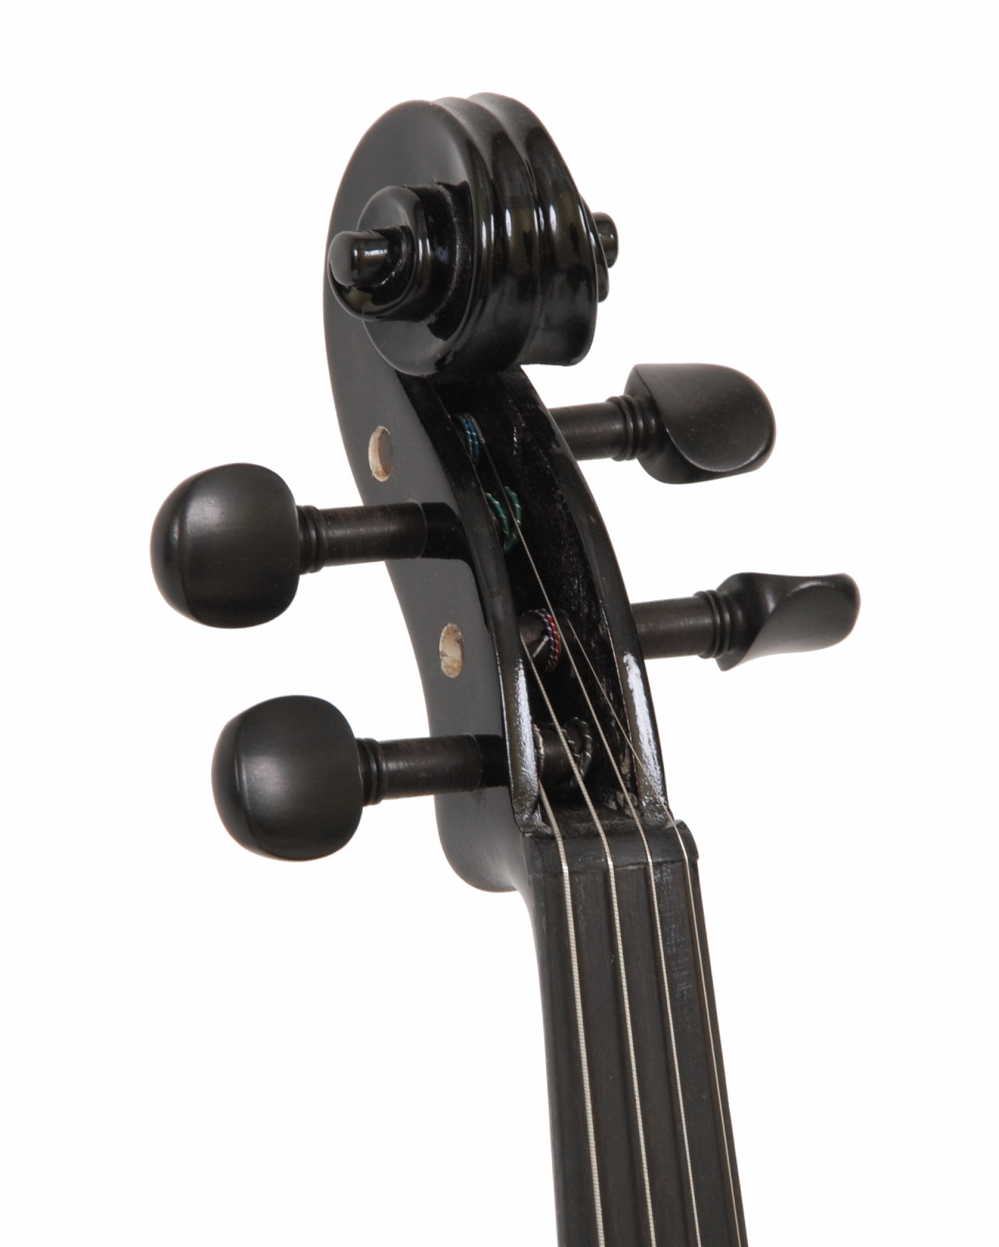 Harleybenton Hbv 870bk 4 4 Electric Violin